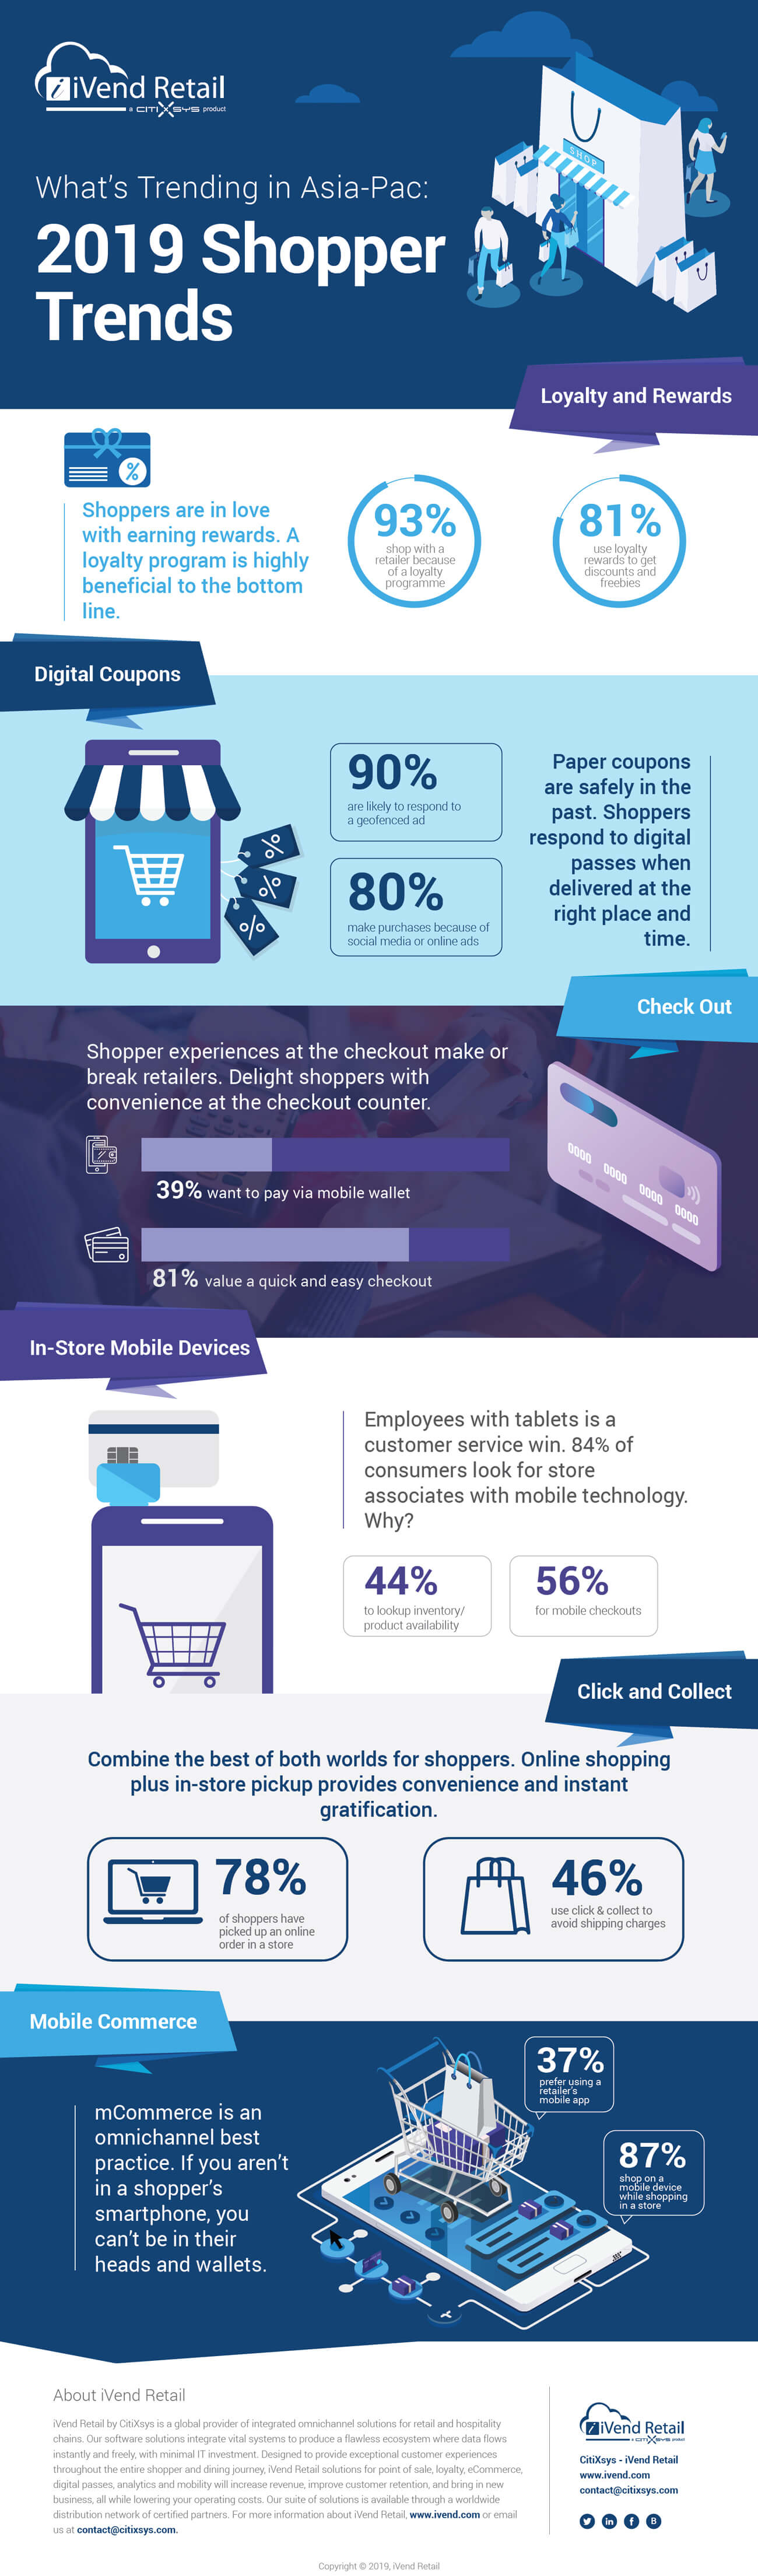 2019 Global Shopper Trends - Asia Pacific - Infographic